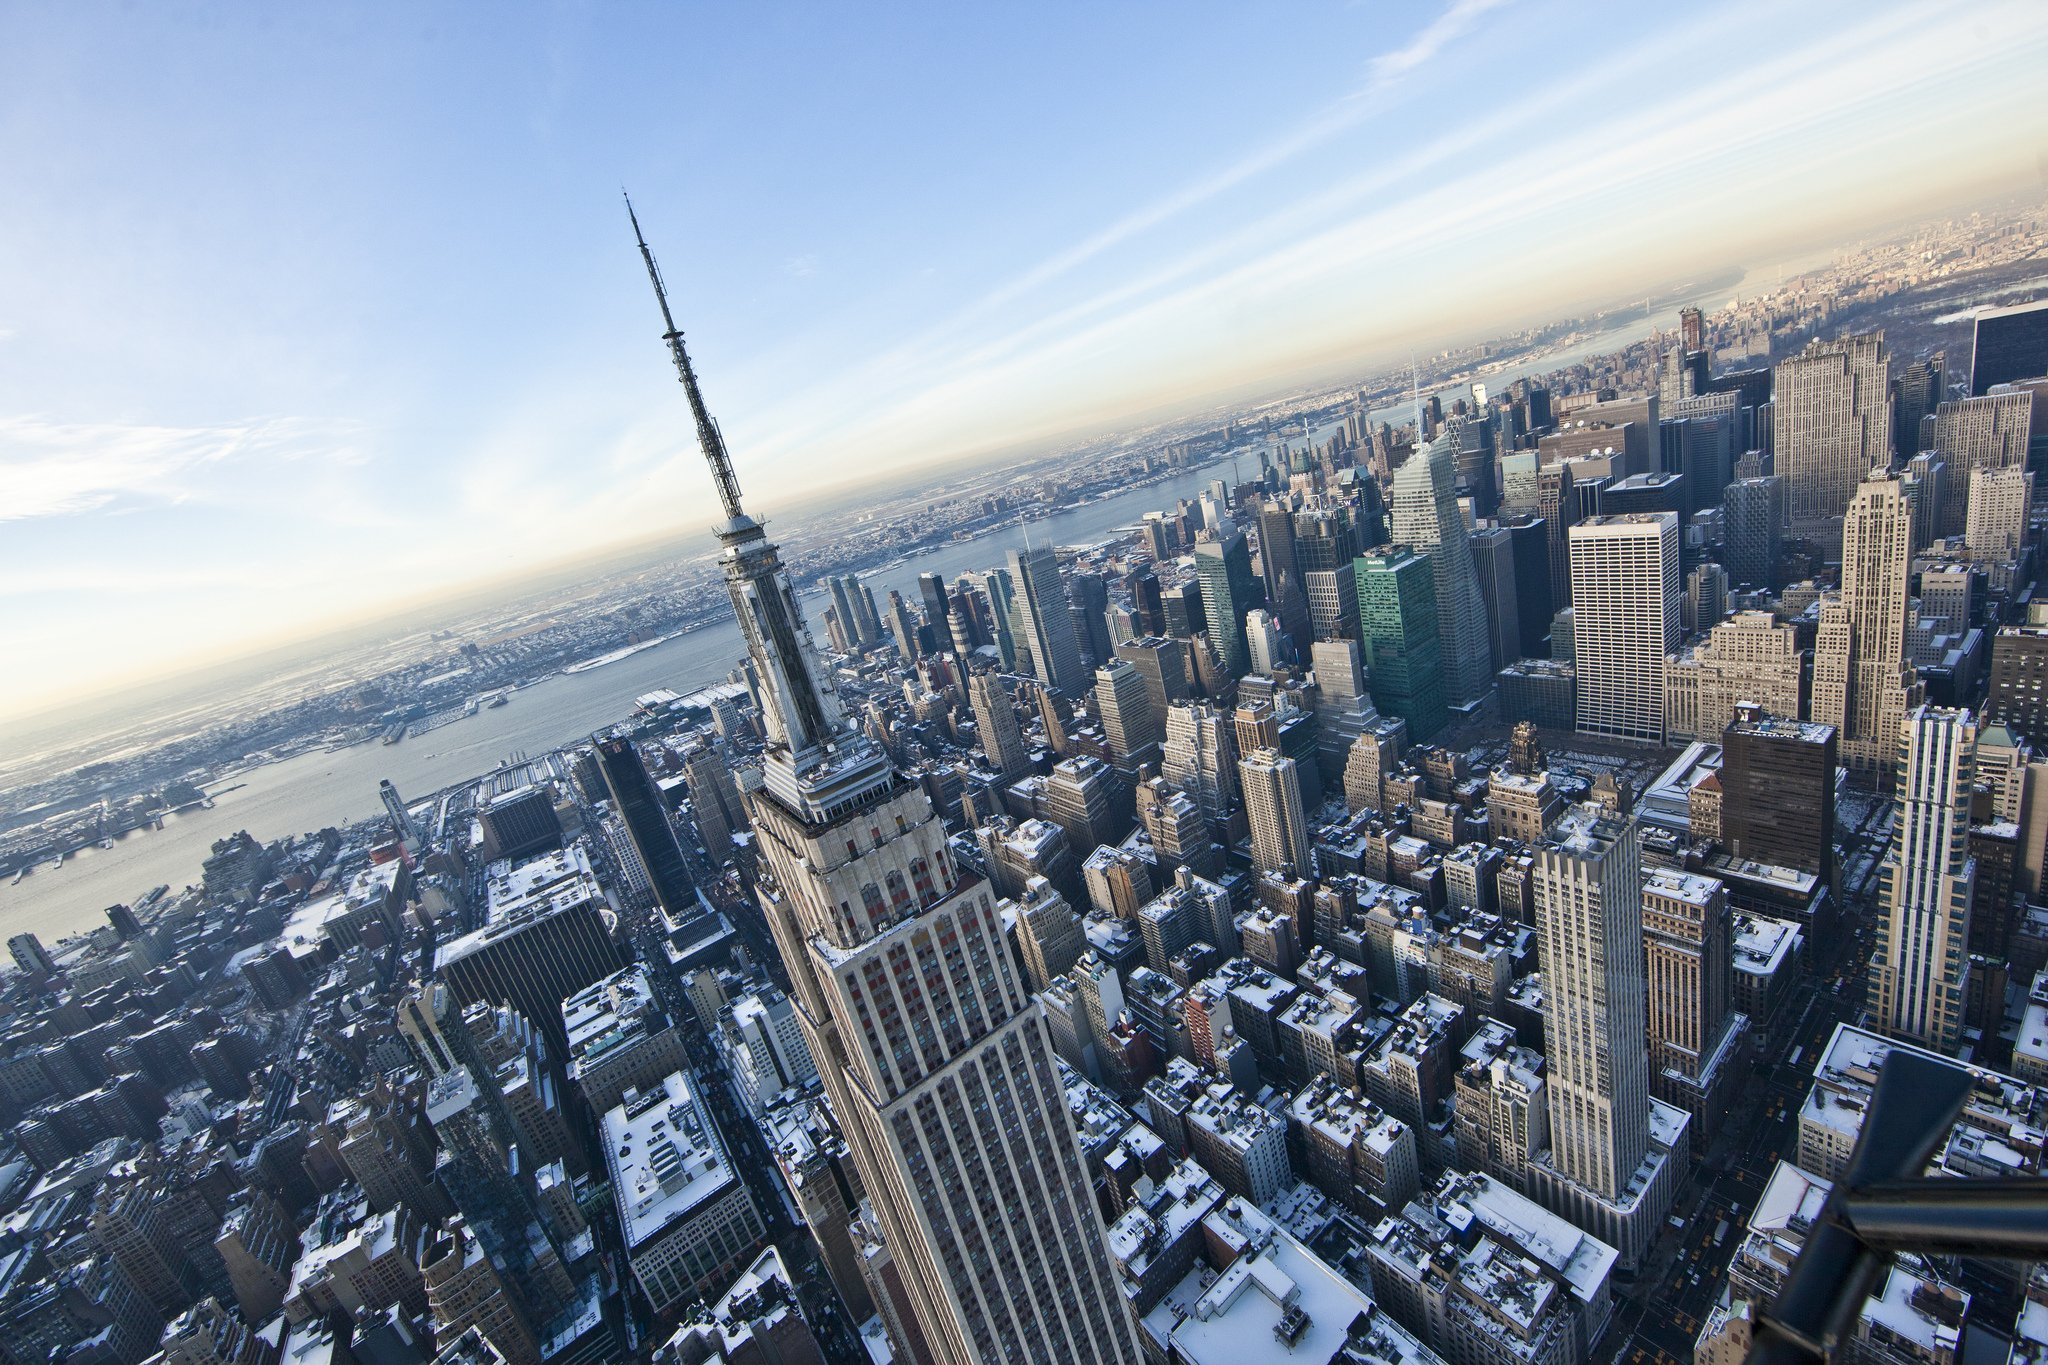 Empire State Building New York City by Anthony Quintano (CC)